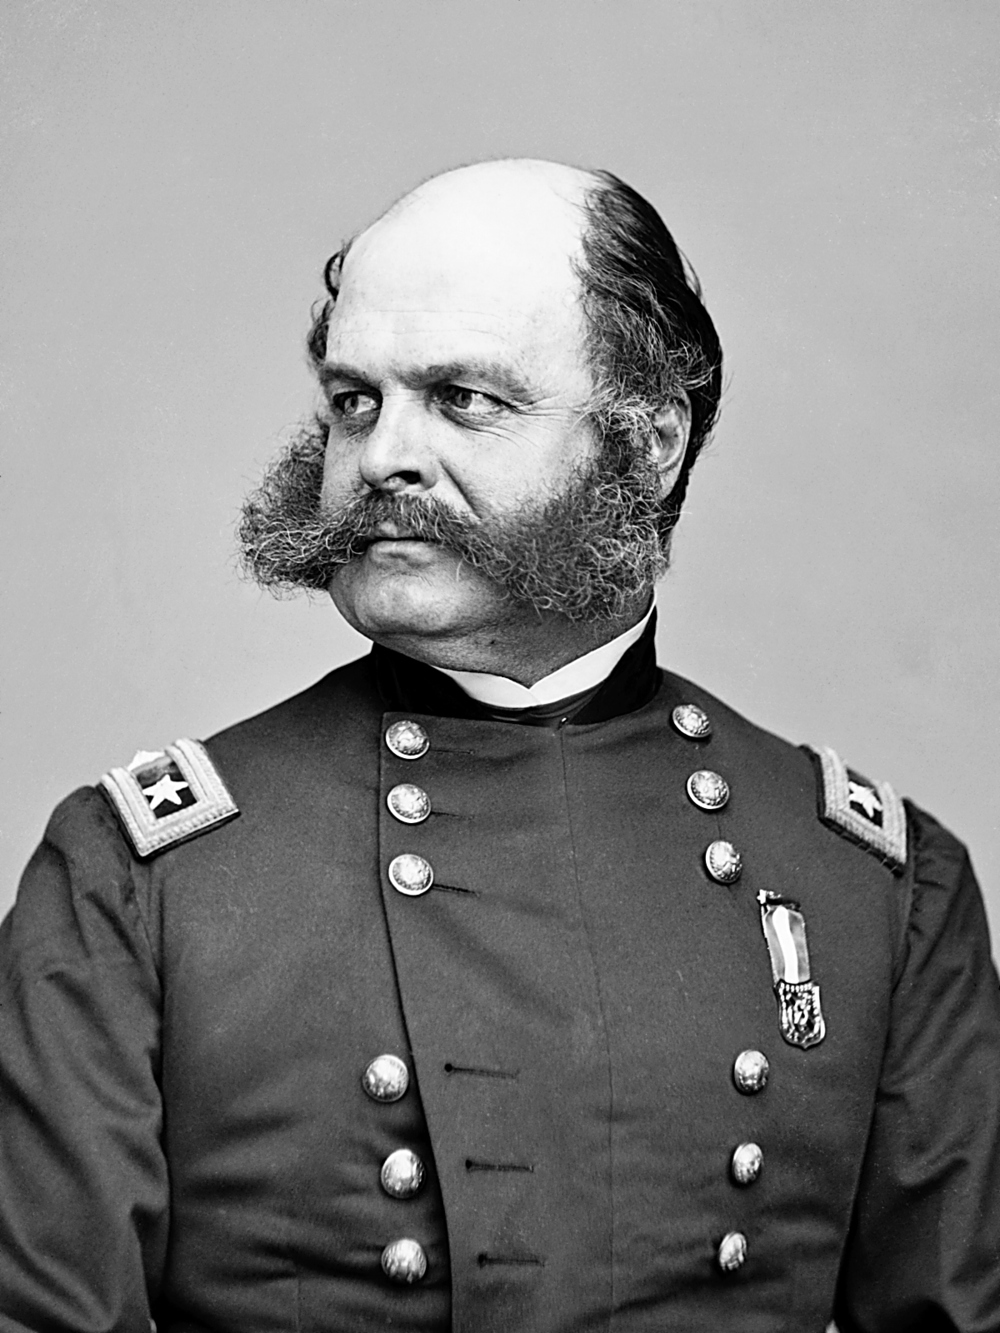 The Burnside: Also known as the Franz Josef, for the Austrian emperor. But we're giving the designation to Ambrose Burnside, since the man credited for inventing the sideburn also sported the style, and was born nearly 25 years before the other gentleman. Time to get: Six to nine months Worn by: Uh, we just told you that